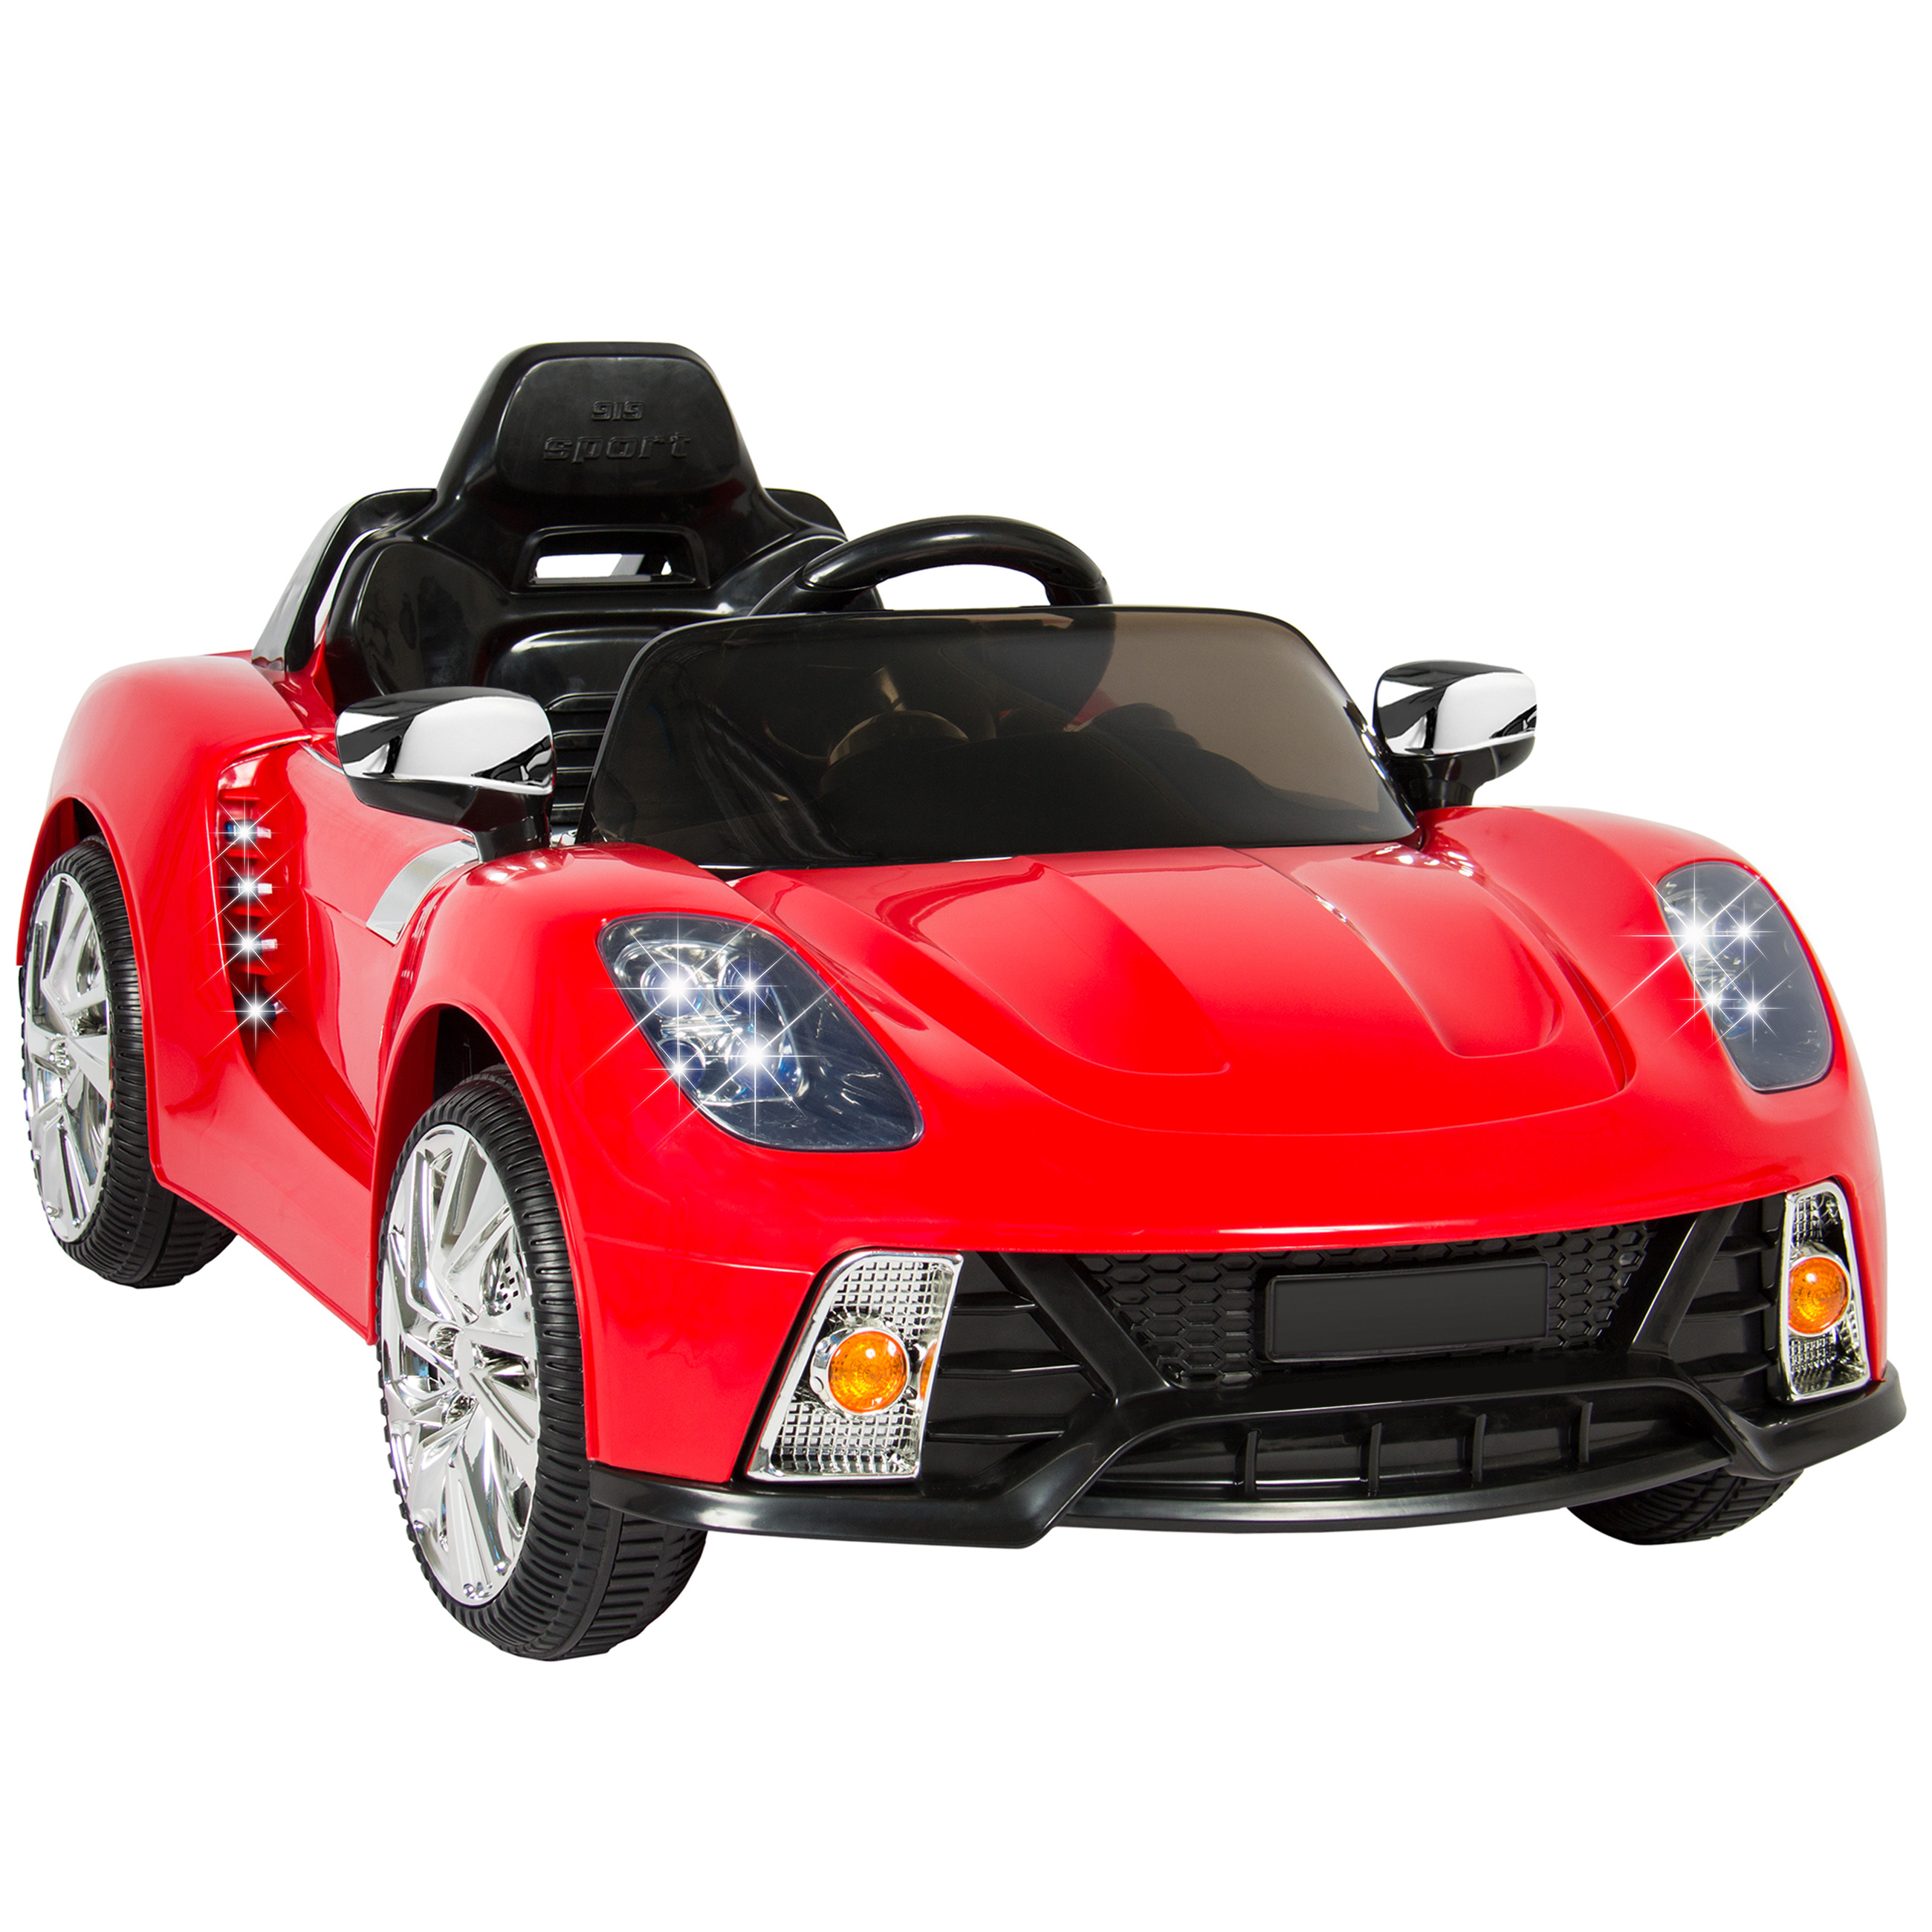 Best Kids Car New Best Choice Products 12v Kids Battery Powered Remote Control